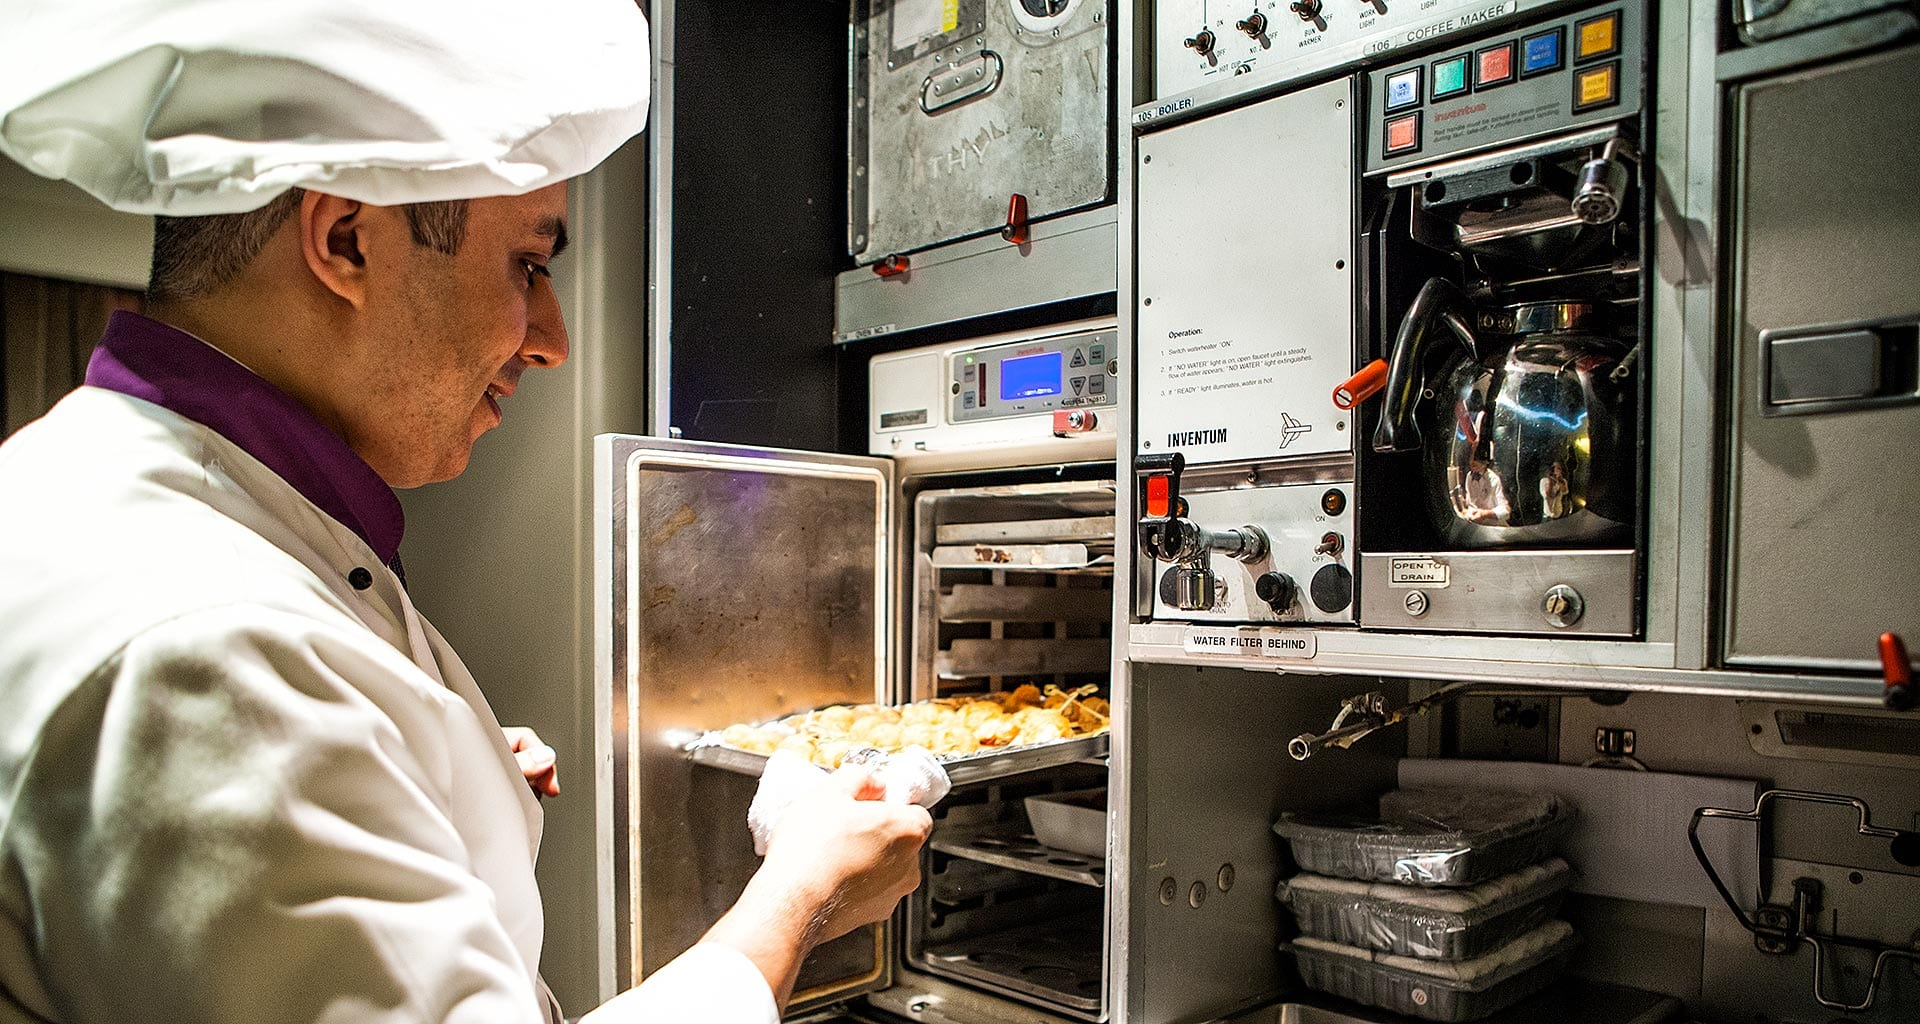 Turkish Airlines Inflight Chef prepares dishes in oven